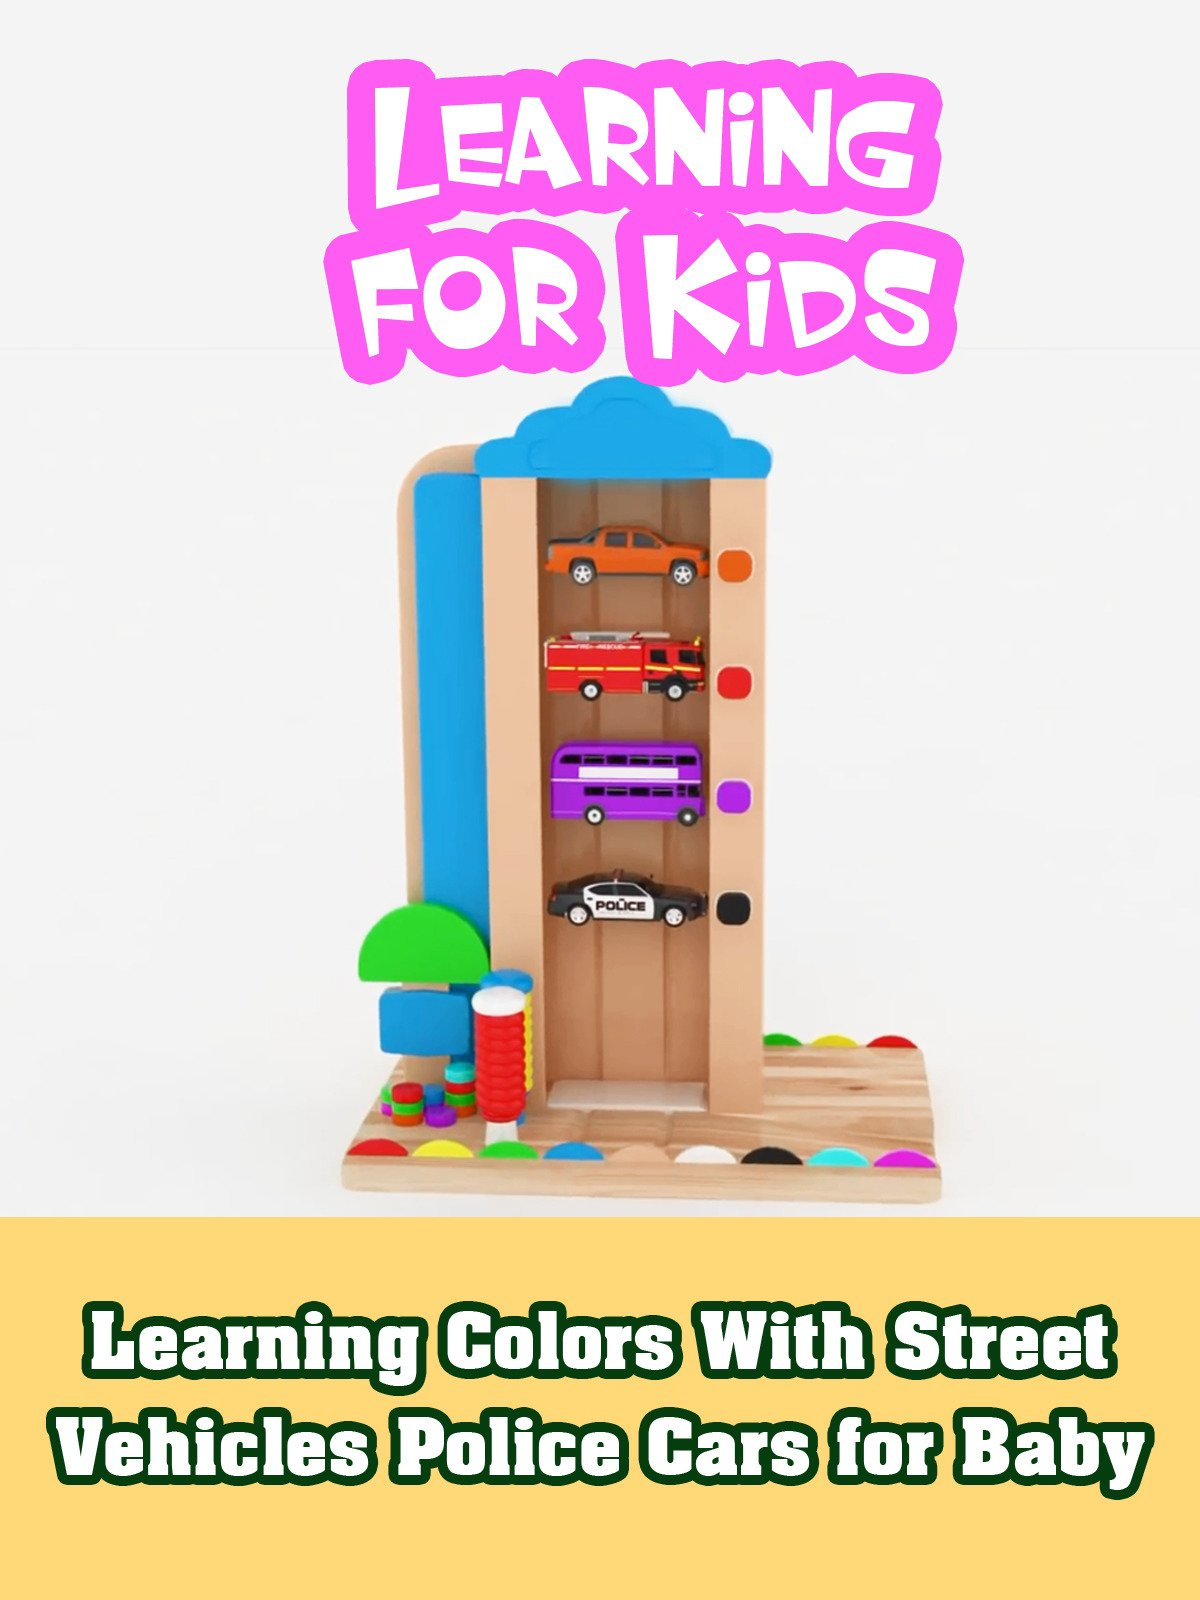 Learning Colors With Street Vehicles Police Cars for Baby